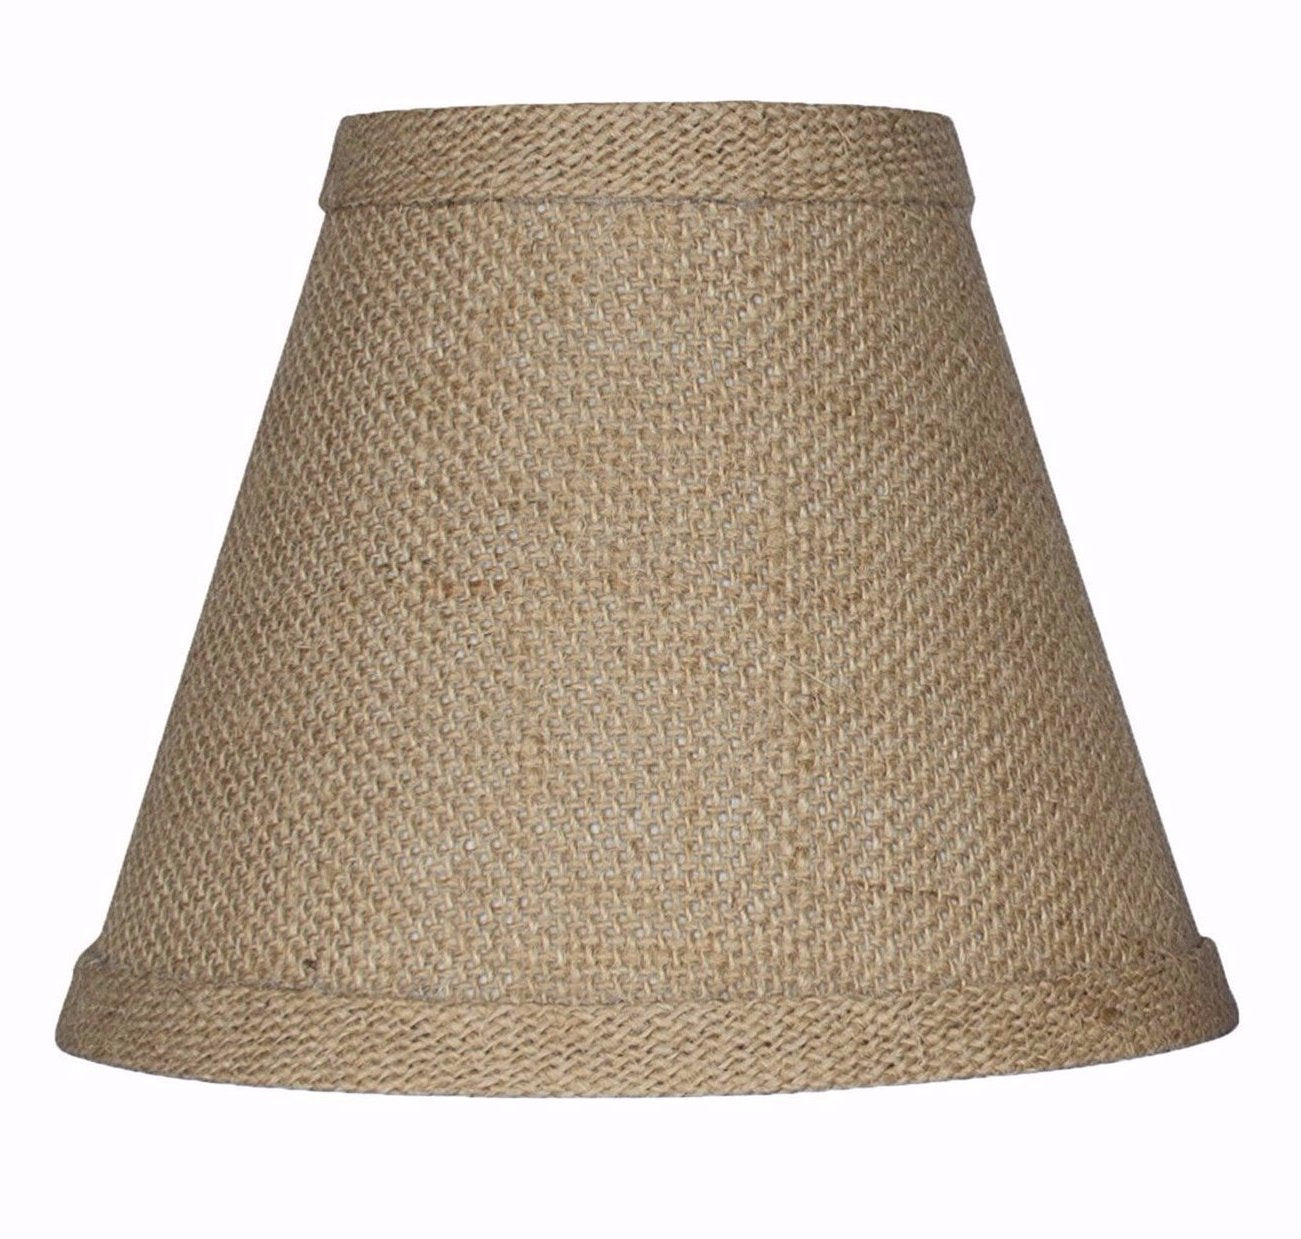 Burlap chandelier lamp shade 5 6 sizes urbanest burlap chandelier lamp shade 5 arubaitofo Images